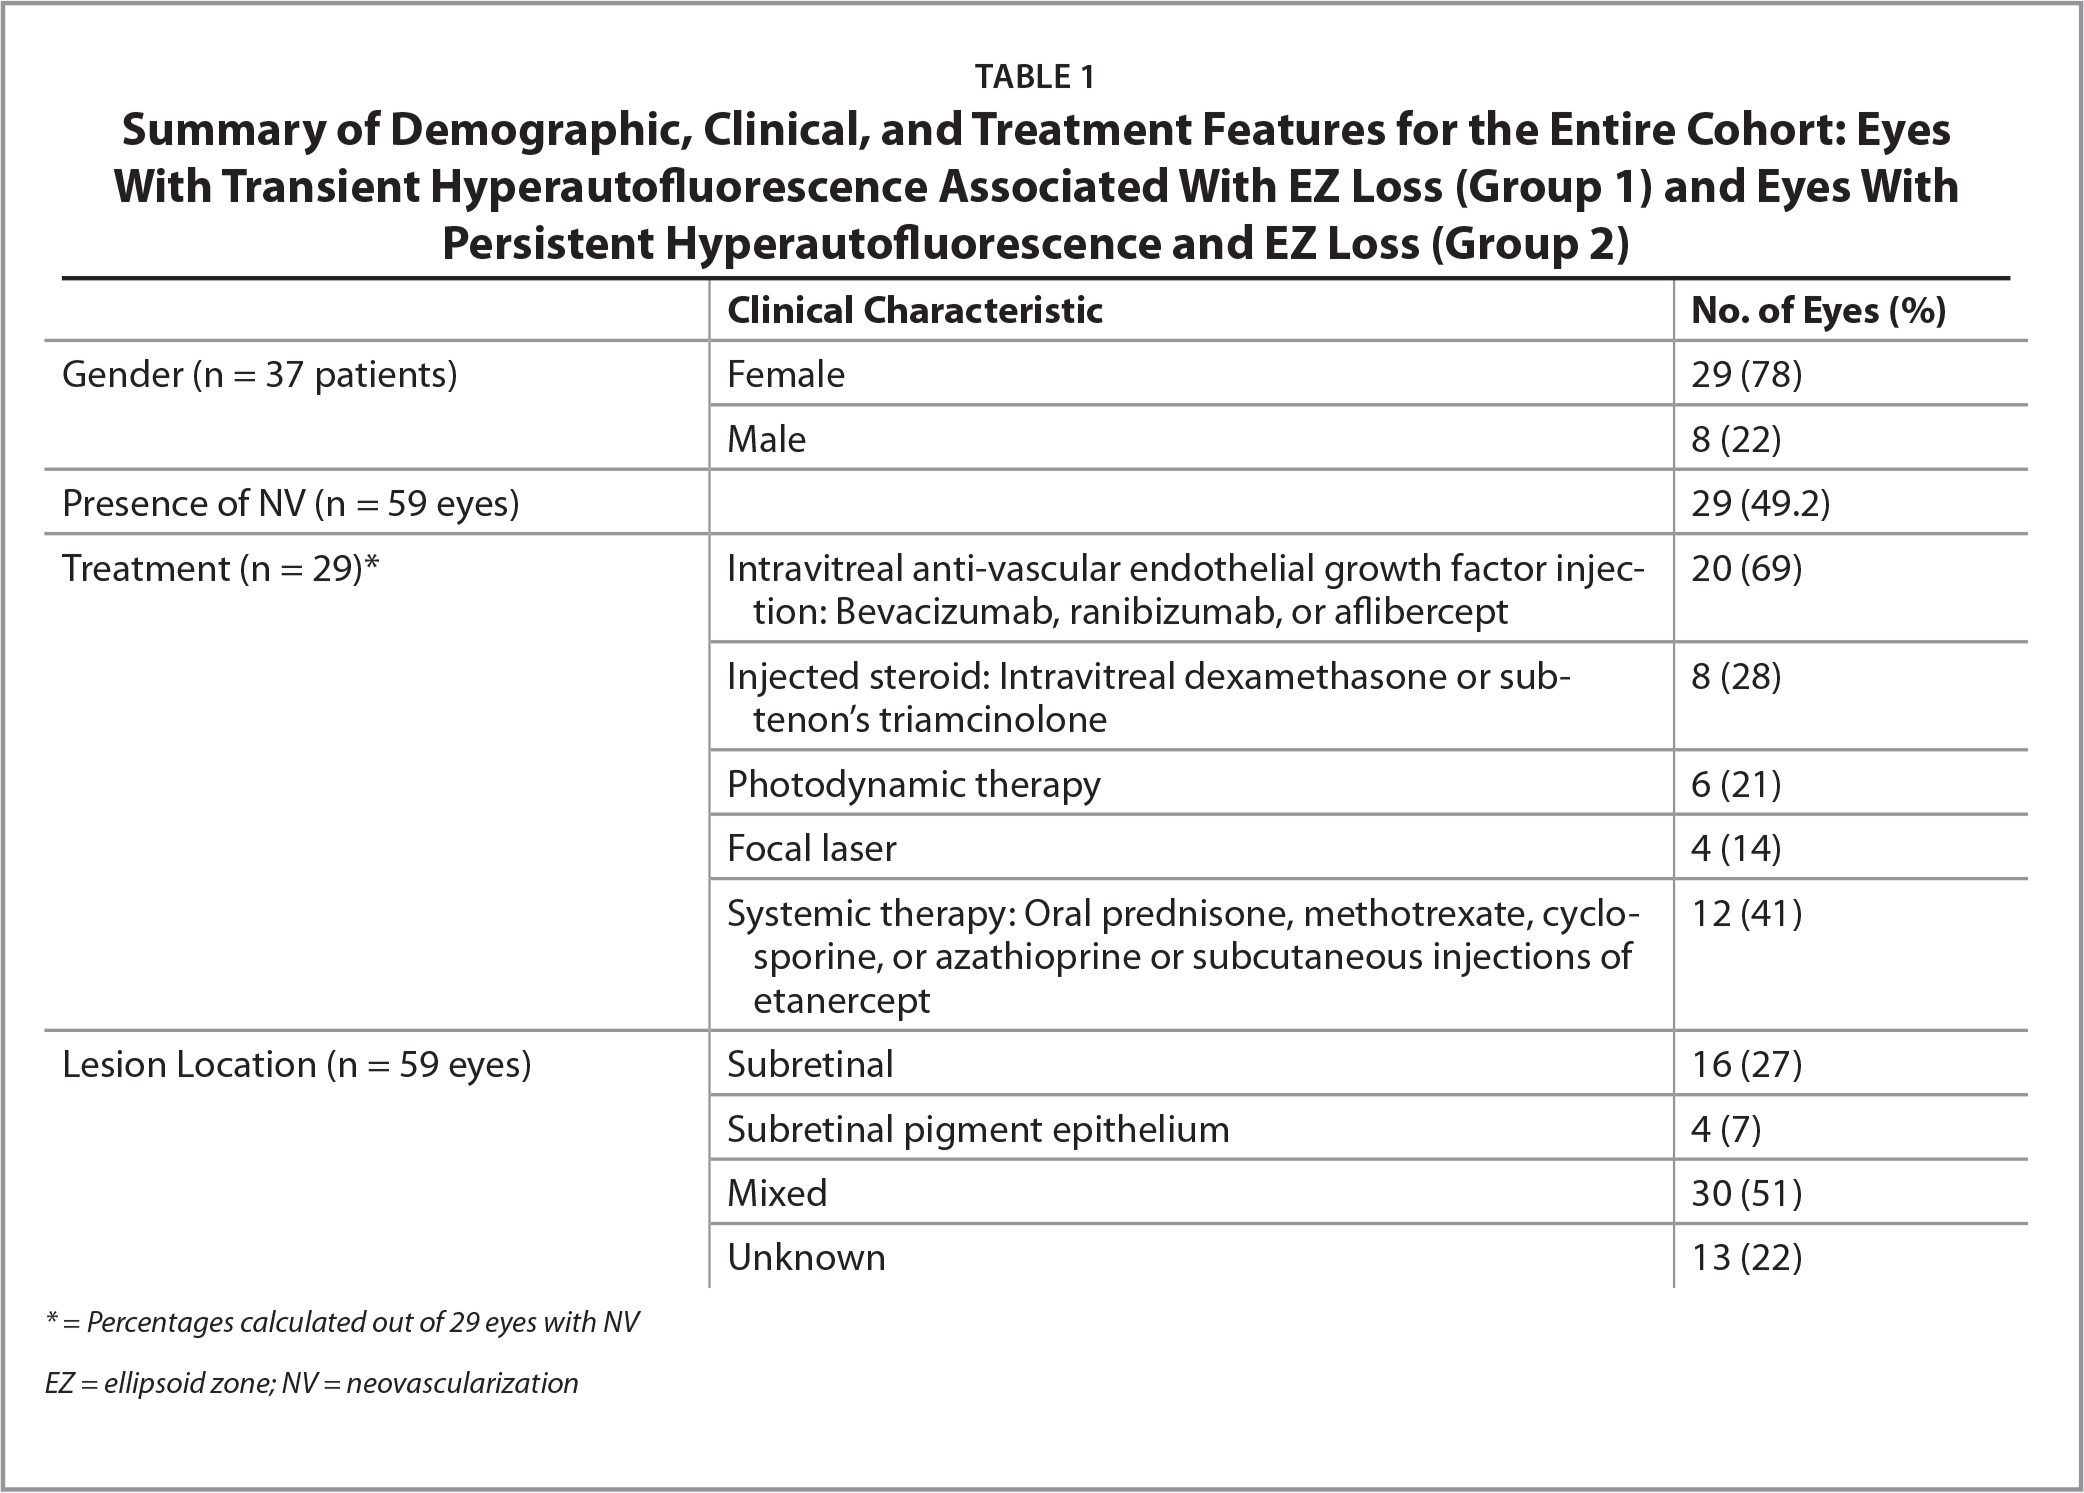 Summary of Demographic, Clinical, and Treatment Features for the Entire Cohort: Eyes With Transient Hyperautofluorescence Associated With EZ Loss (Group 1) and Eyes With Persistent Hyperautofluorescence and EZ Loss (Group 2)